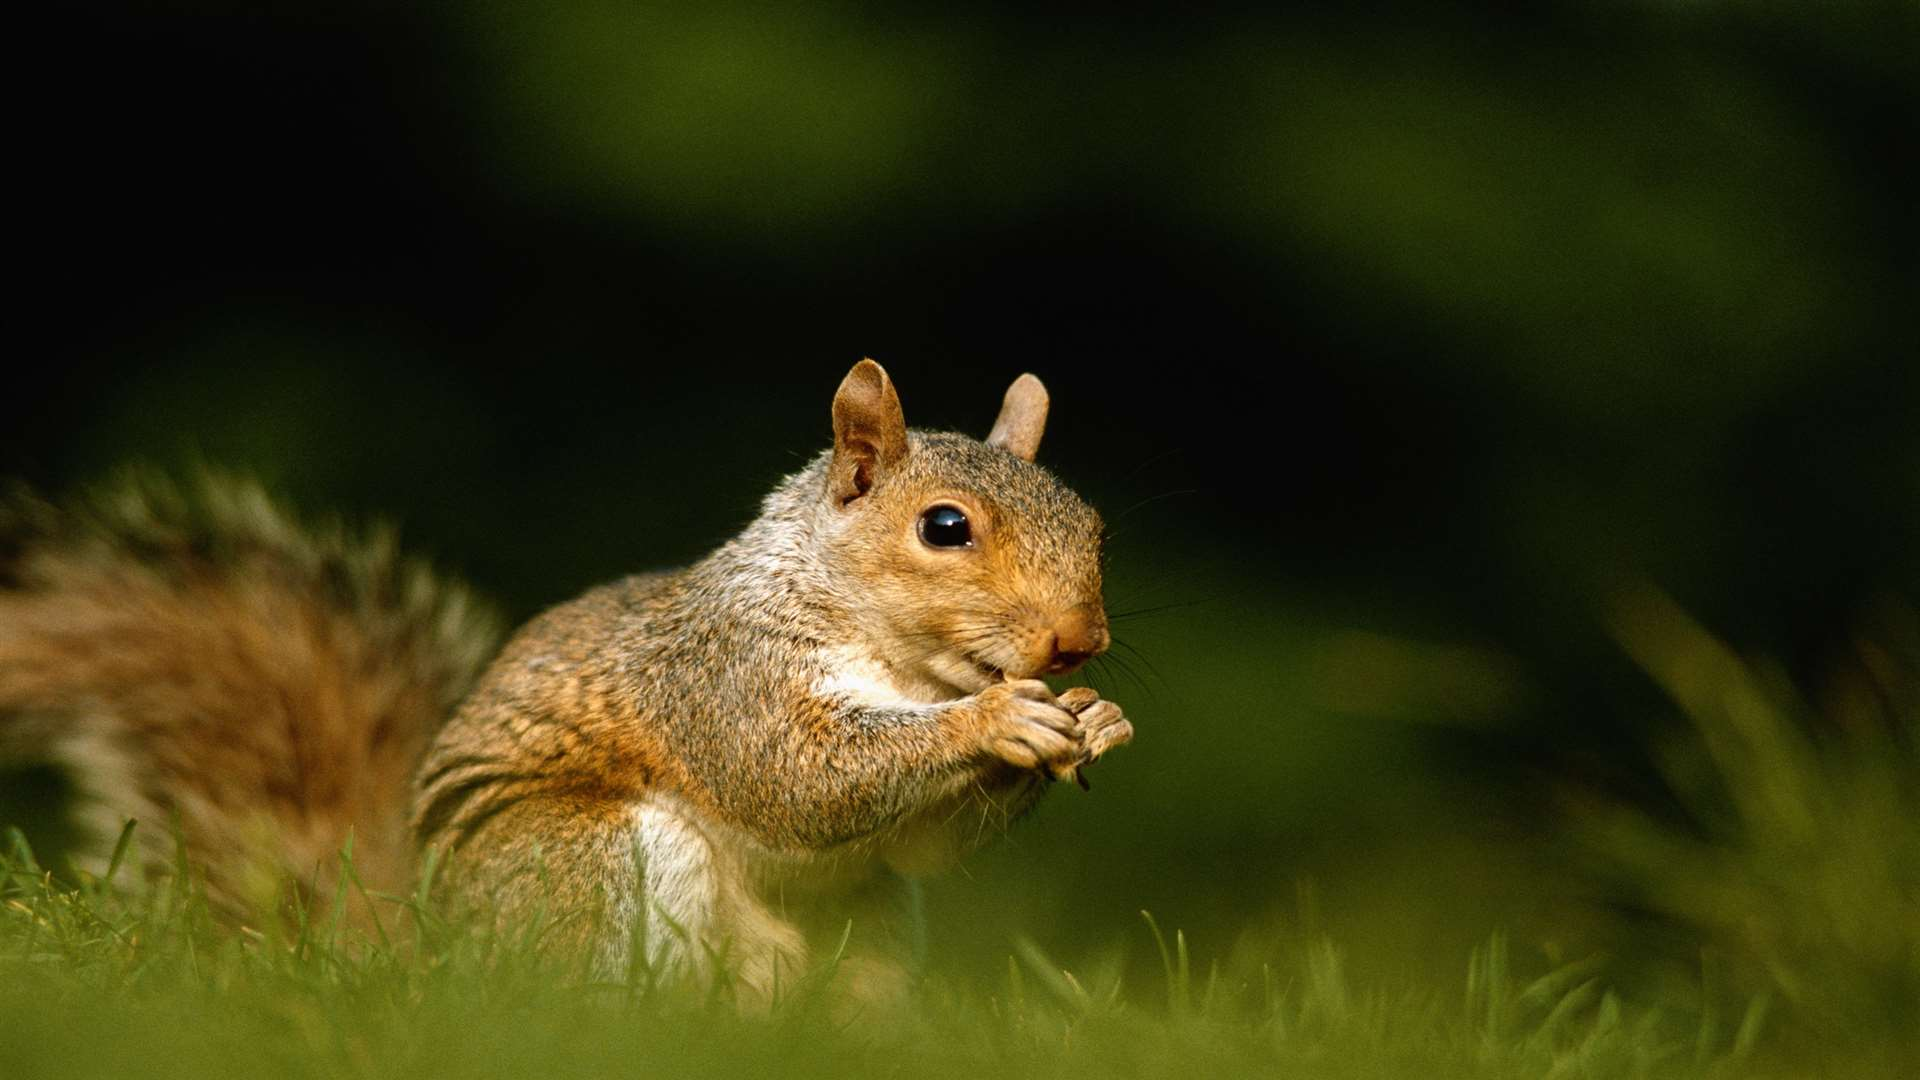 A squirrel. Stock image